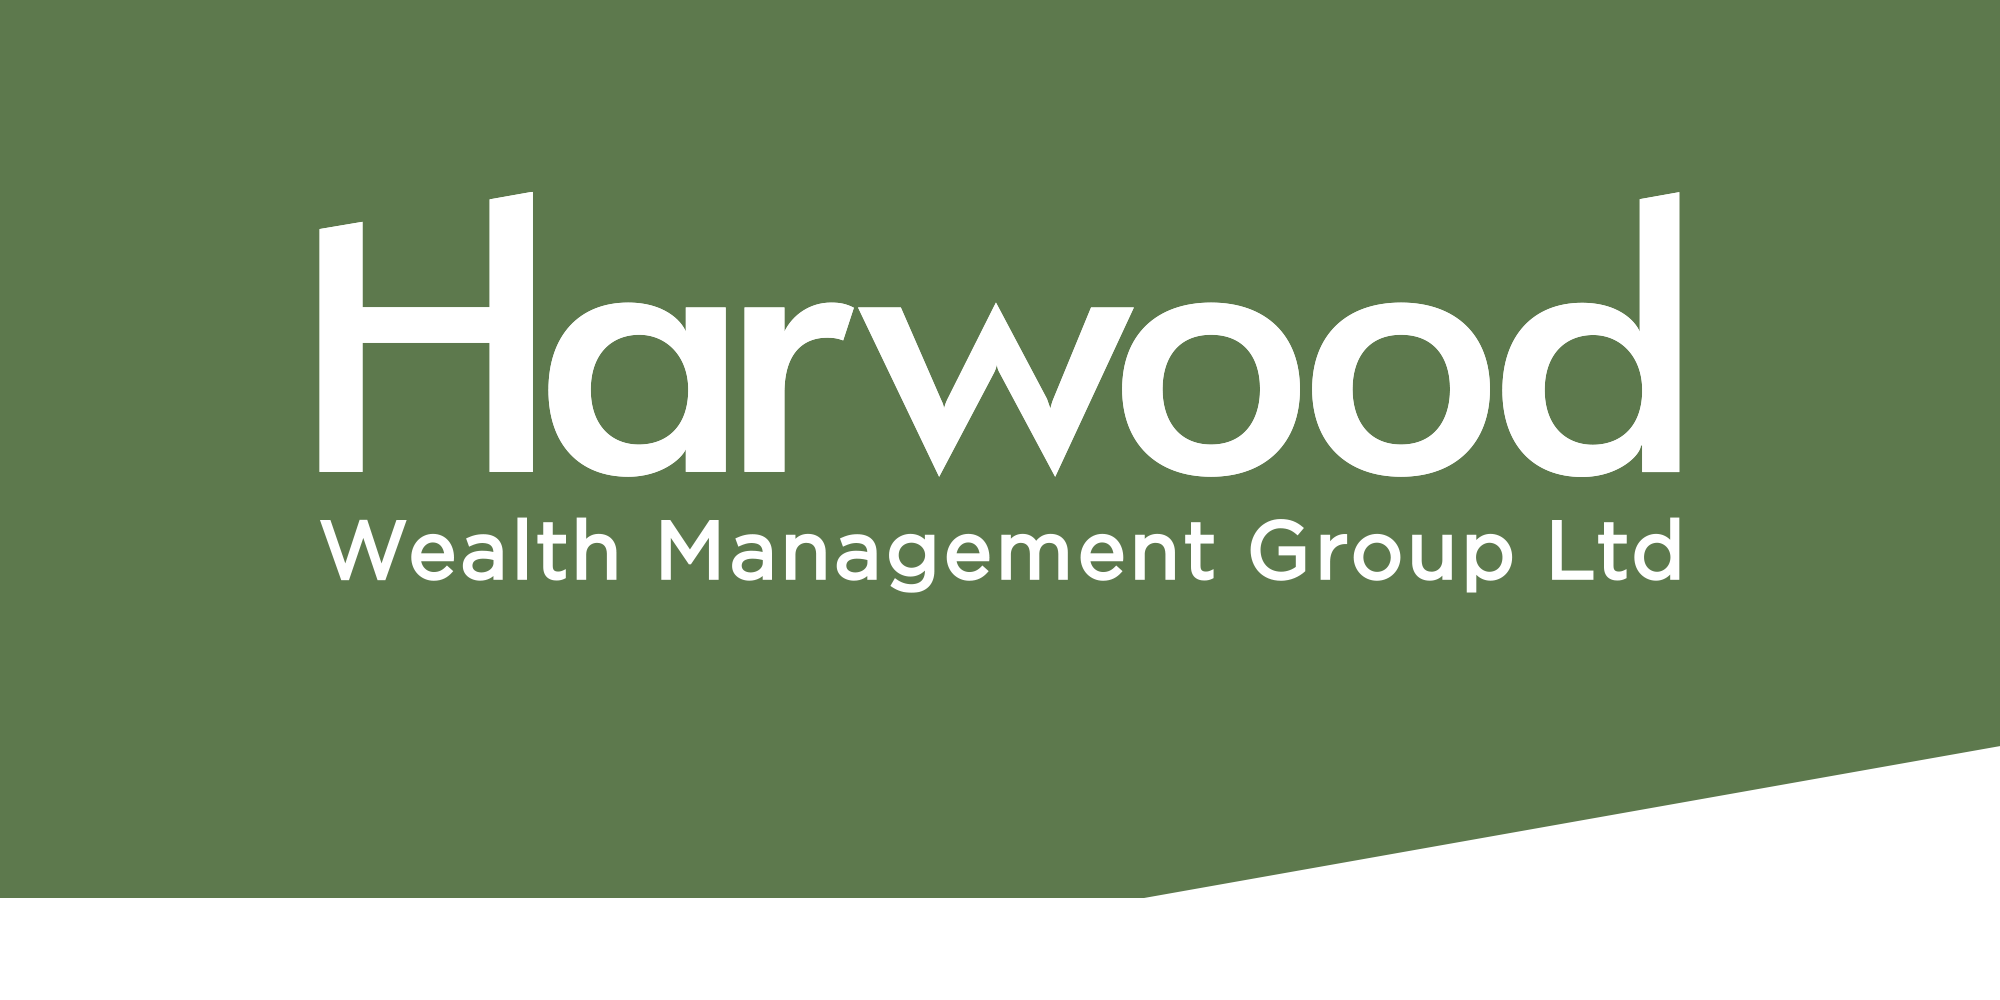 Harwood Wealth Management Group Ltd